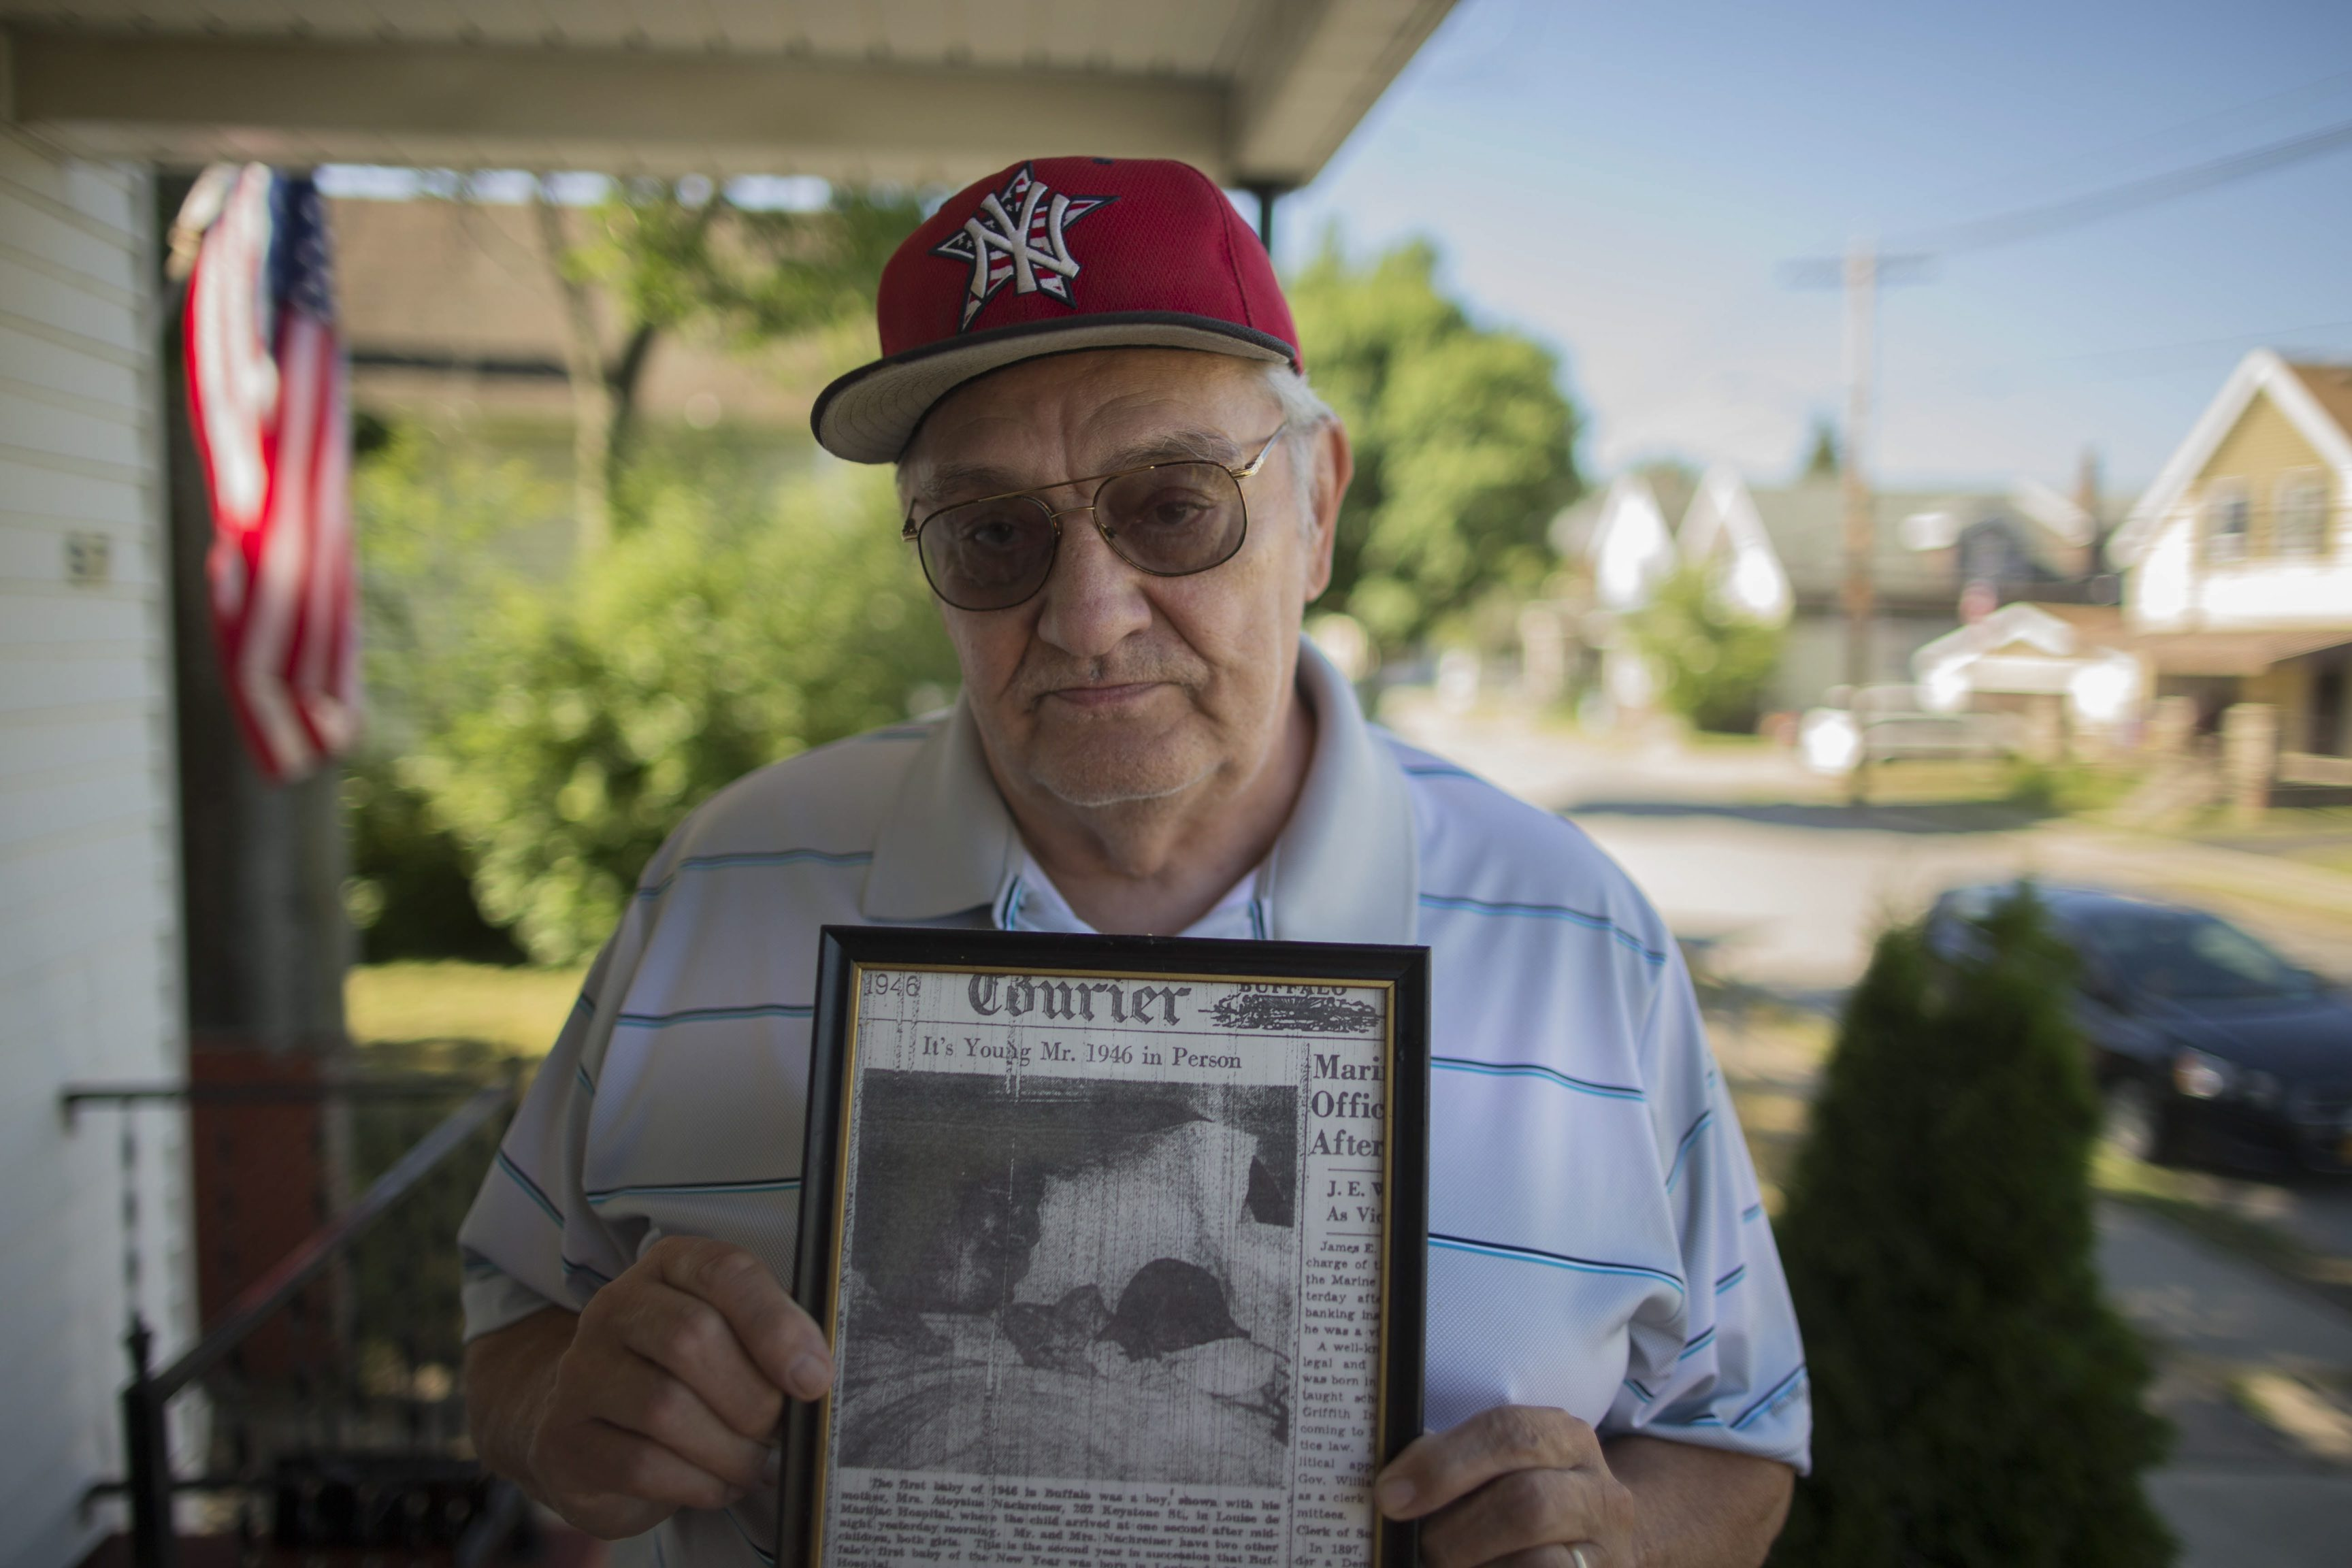 Aloysius 'Al' Nachreiner was born at Sisters Hospital in Buffalo just after midnight on Jan. 1, 1946, making him the first member of the 'Baby Boom' generation.  (Derek Gee/Buffalo News)